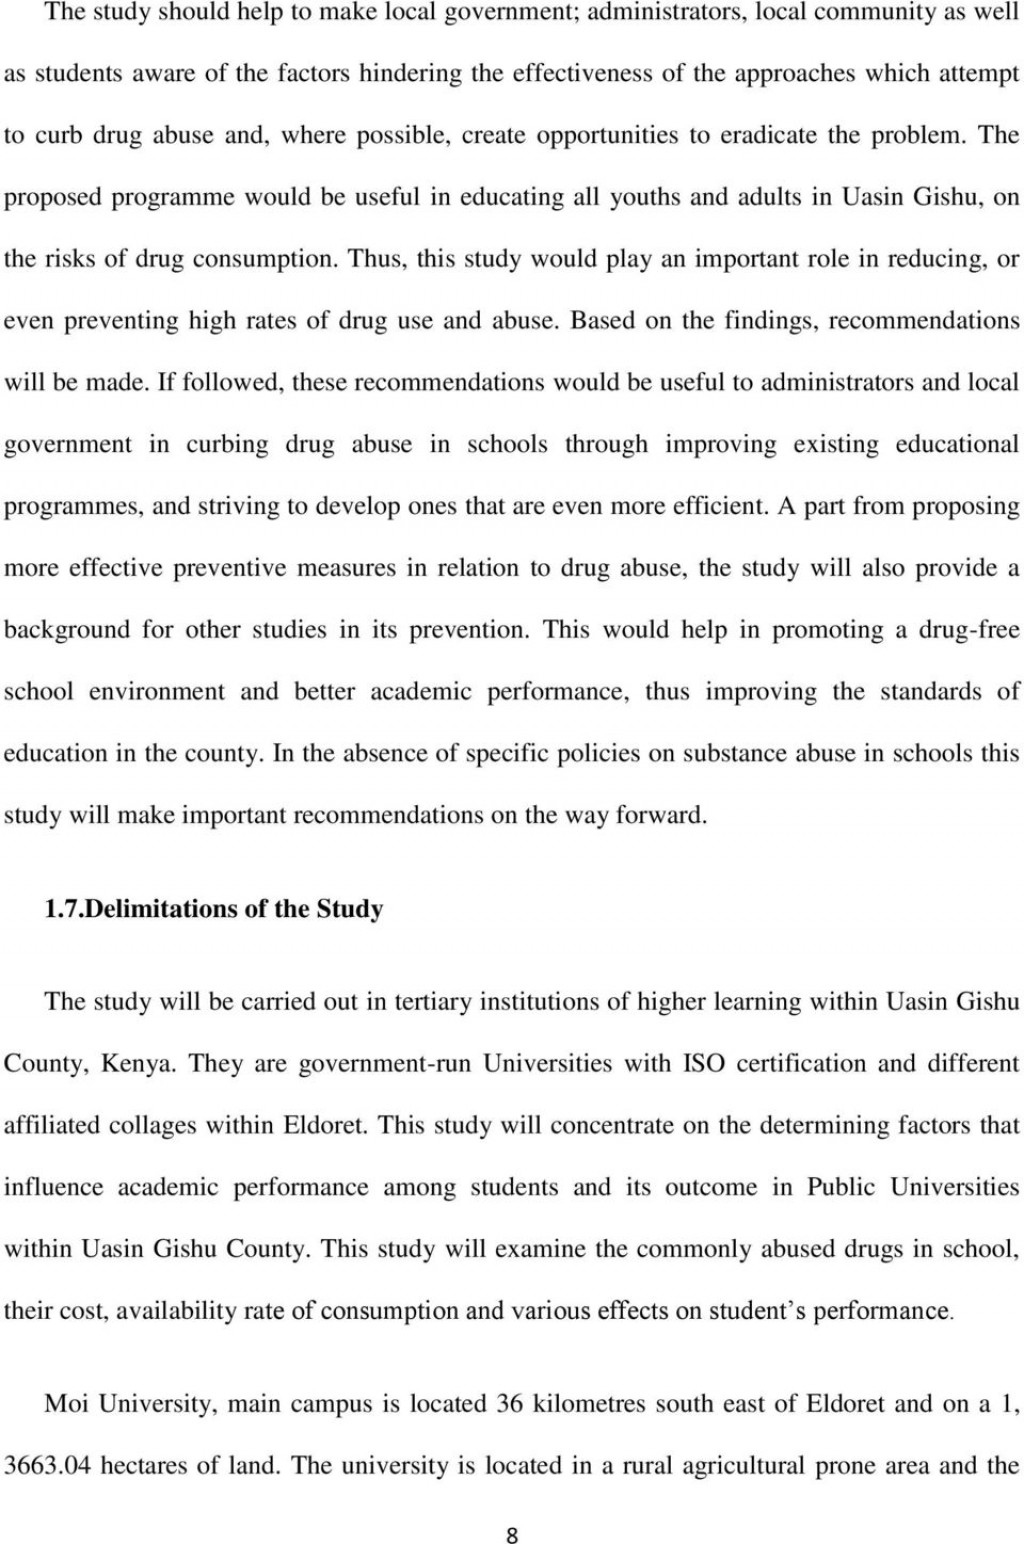 003 Addiction Essay Drugs Essays Drug Topics Abuse College Pa In Students Magnificent About Selfie Hindi Internet Smartphone Conclusion Large